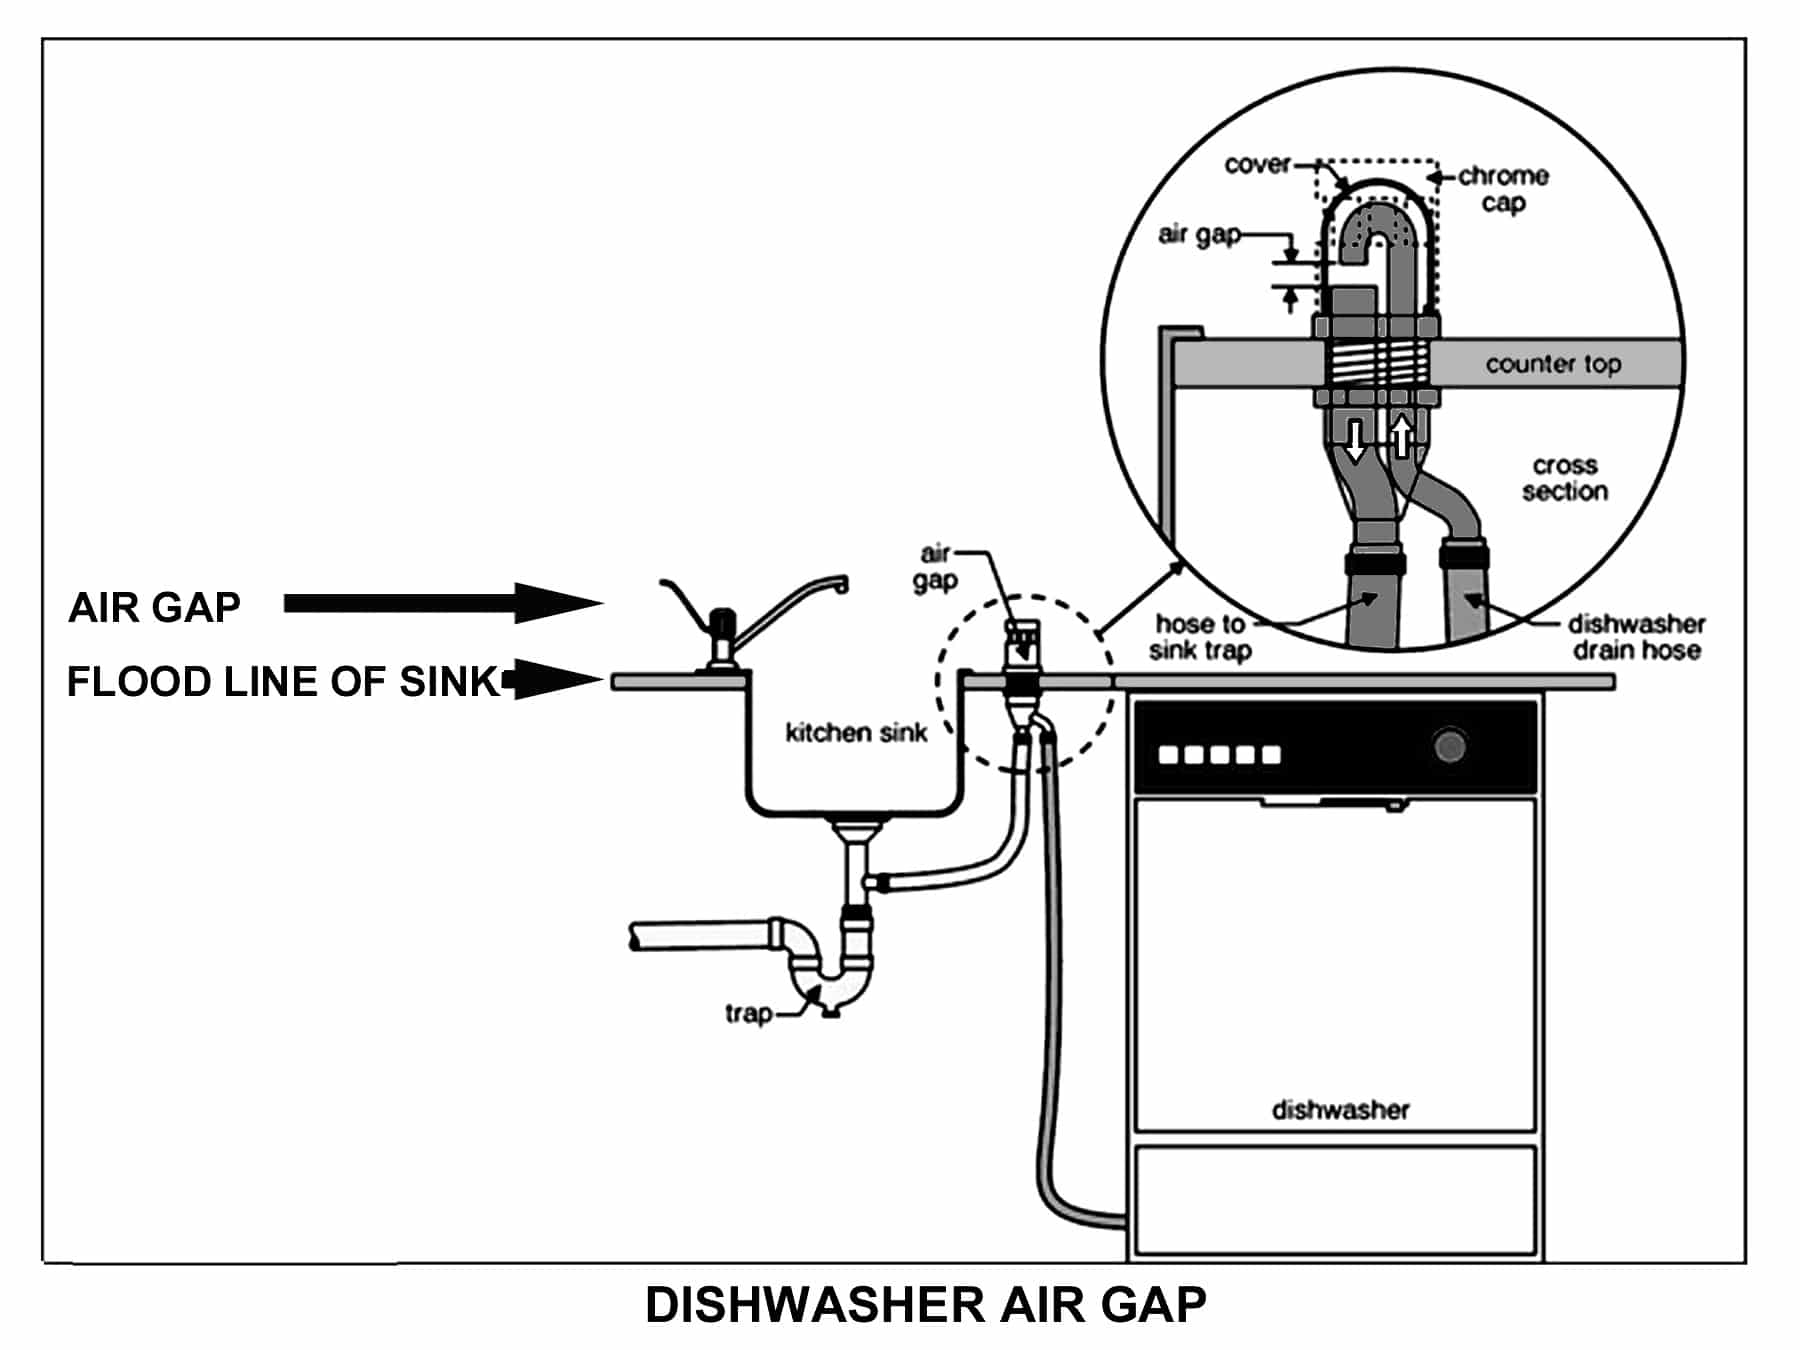 Dishwasher Countertop Gap : An air gap prevents contamination to your water and piping system